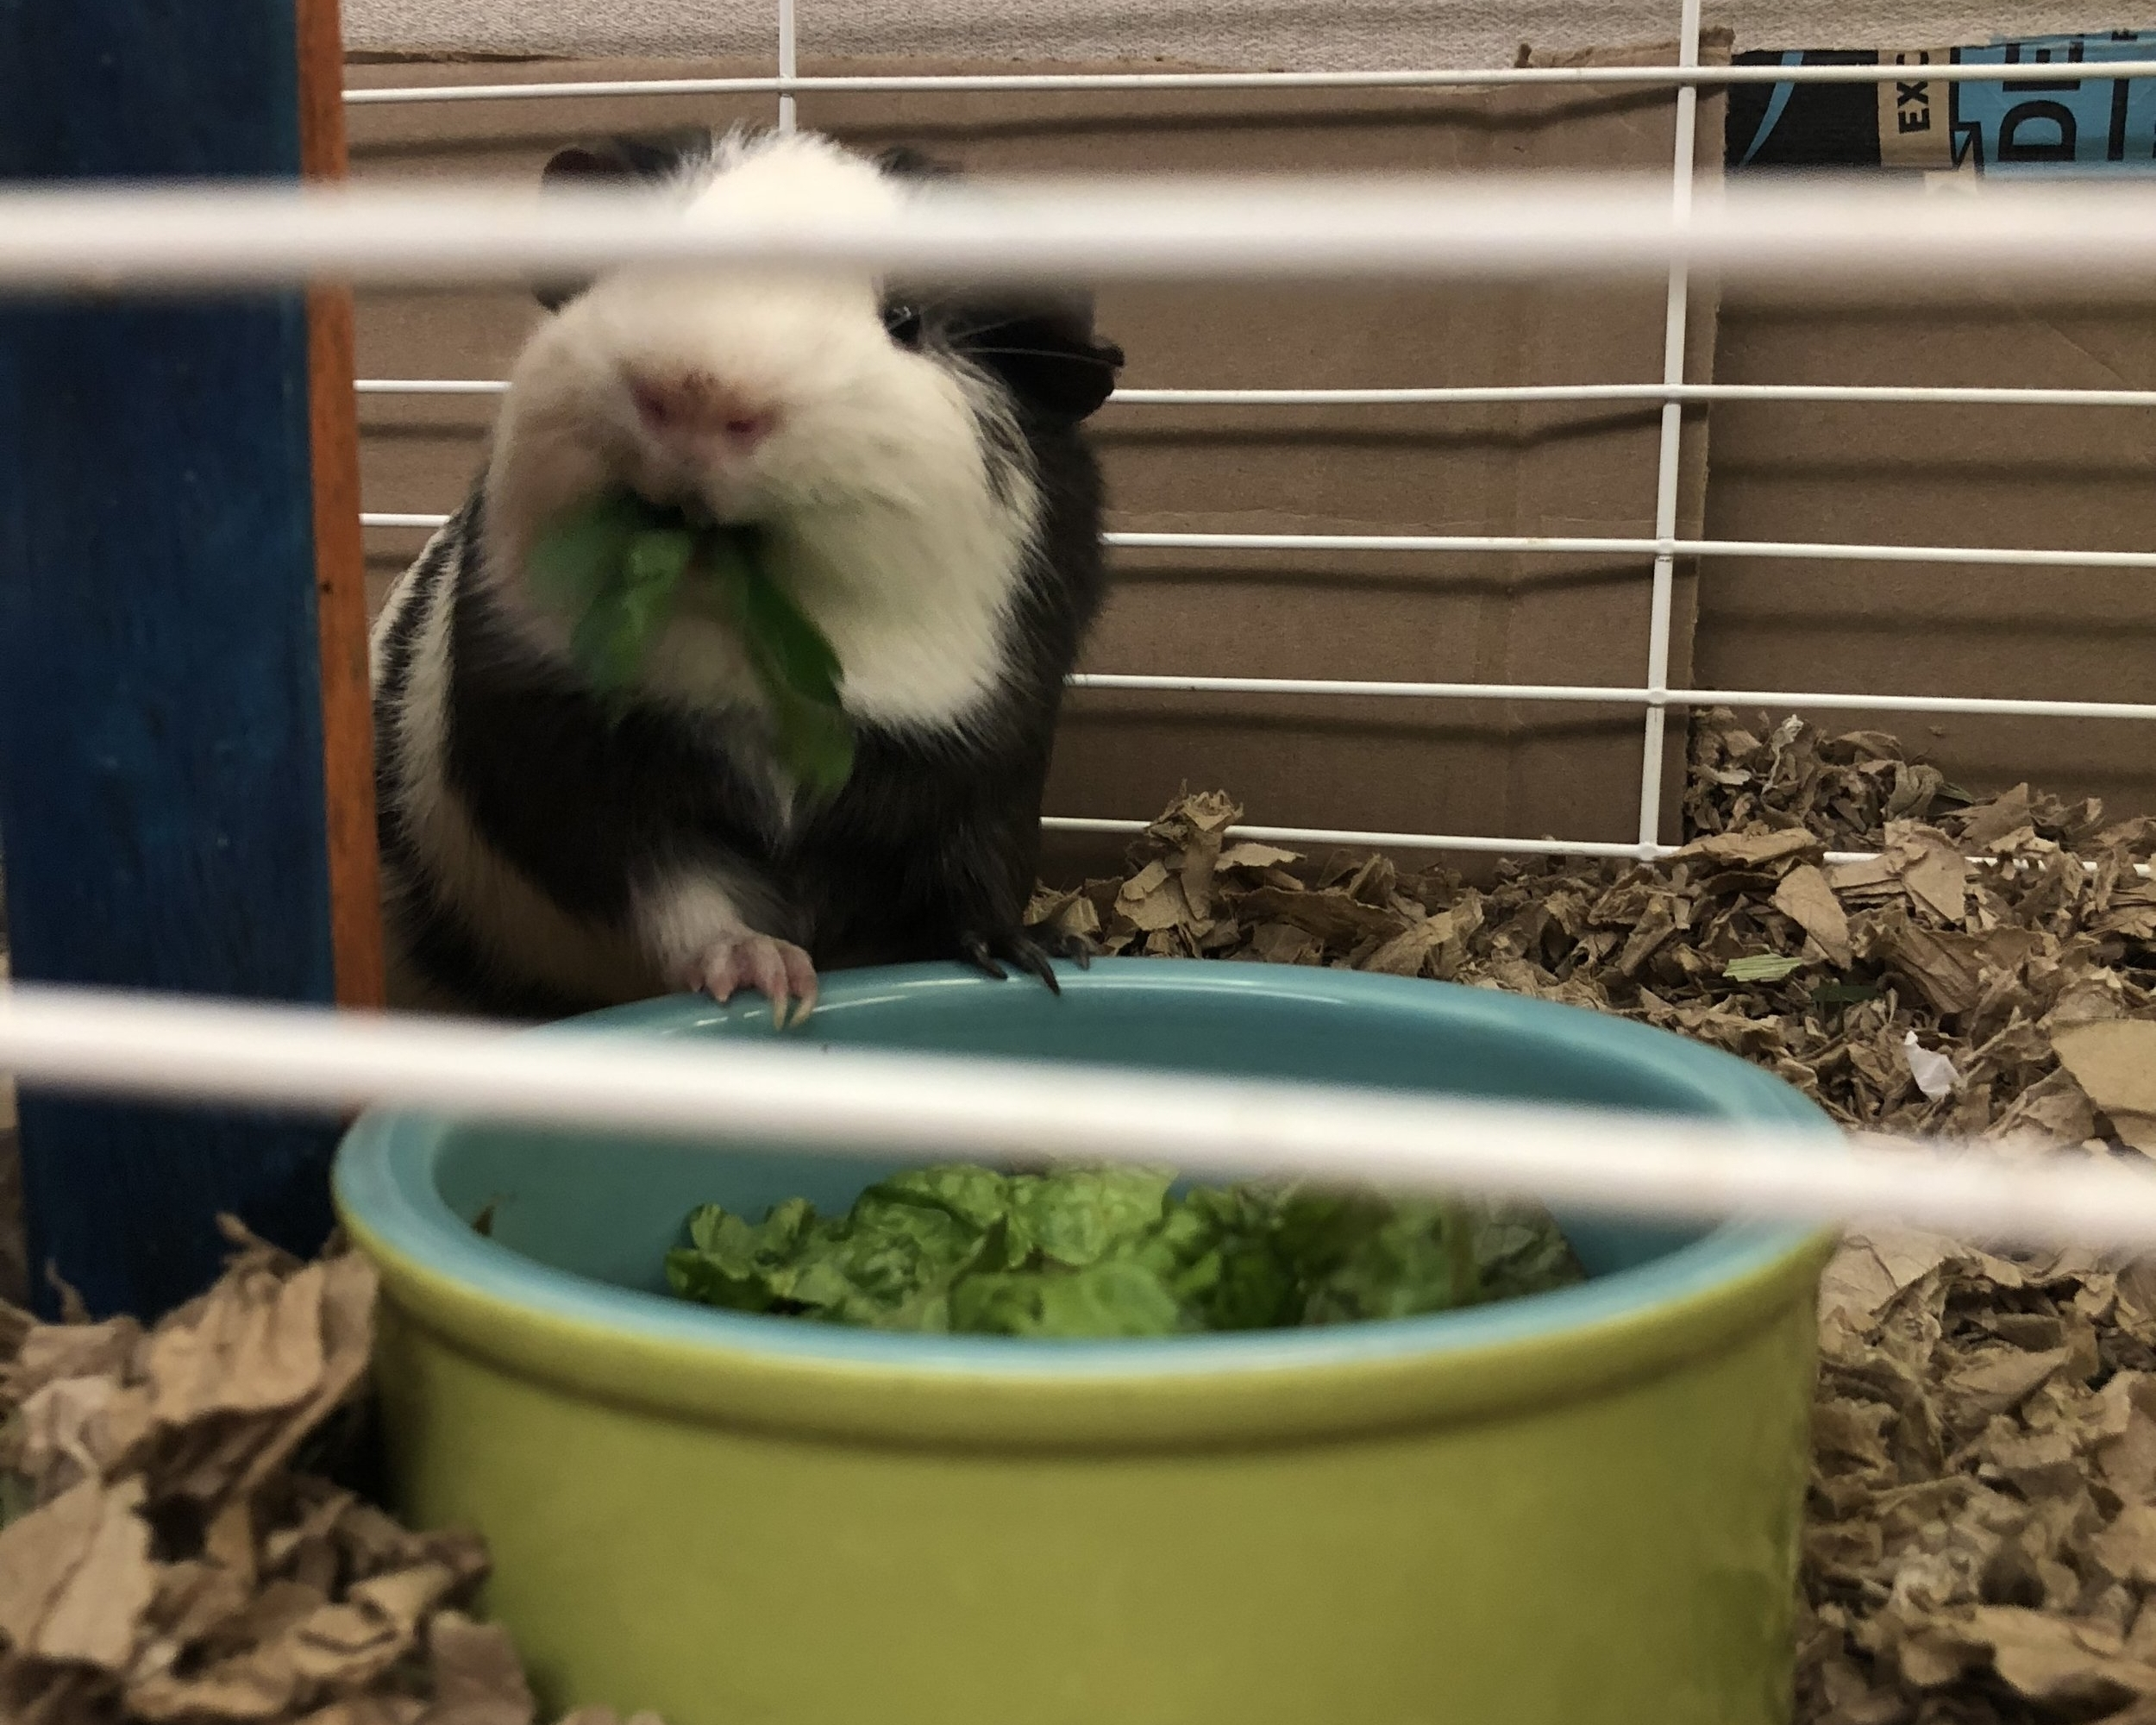 Here he is at present, enjoying his first bits of lettuce and parsley.